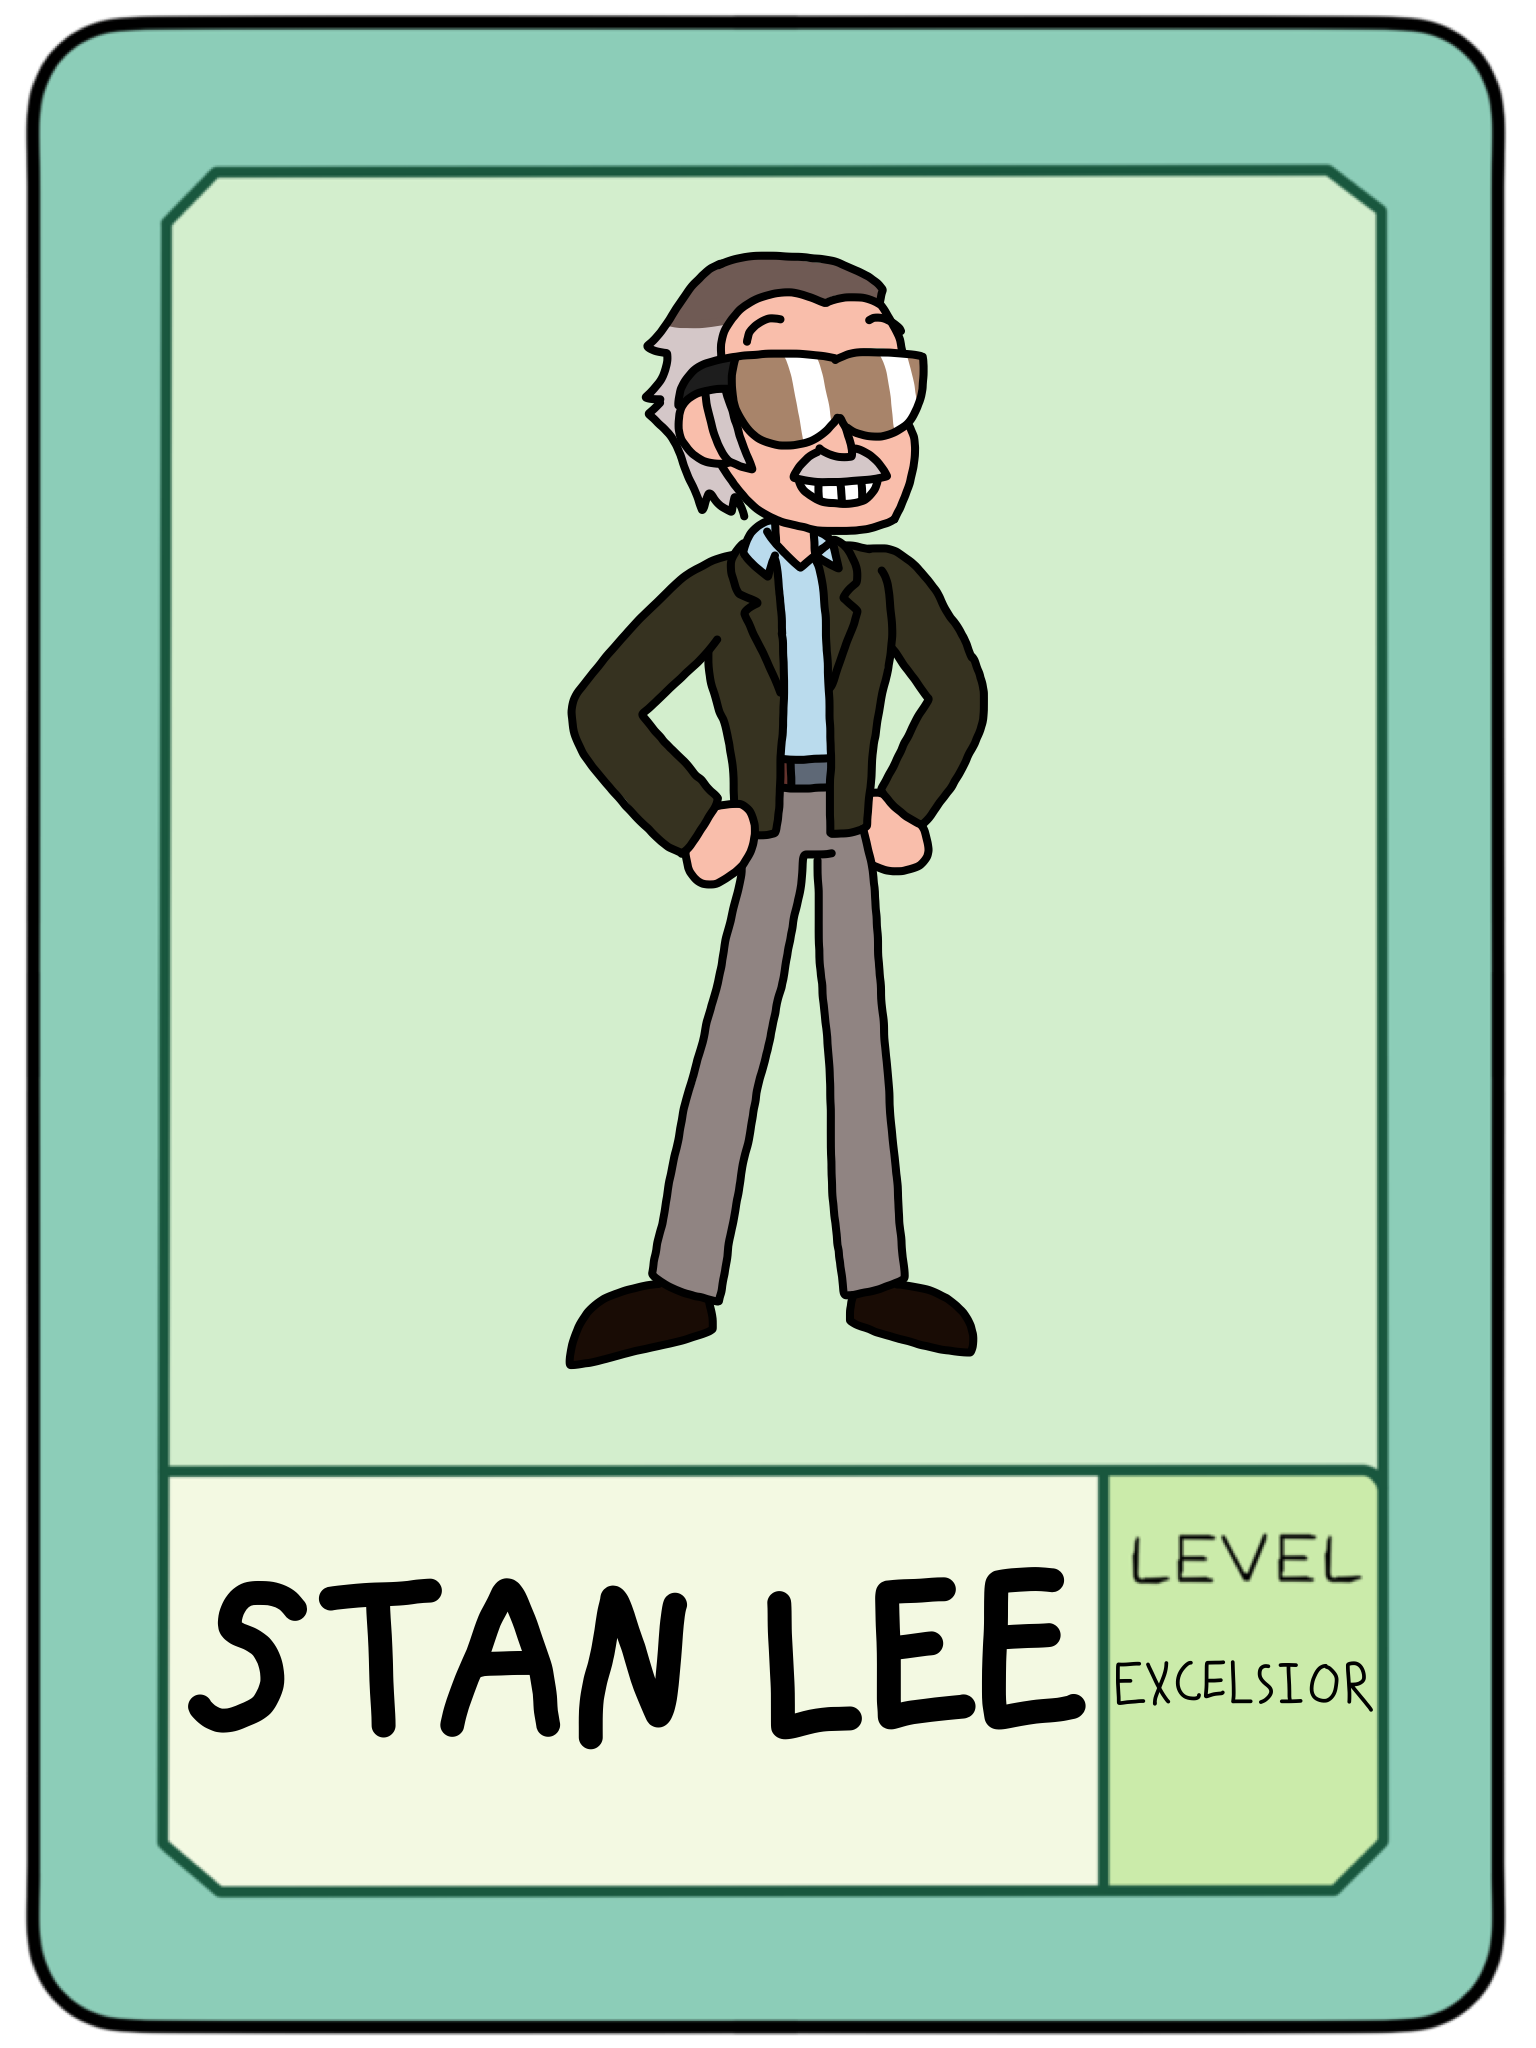 Super Lakewood Plaza Turbo - Stan Lee